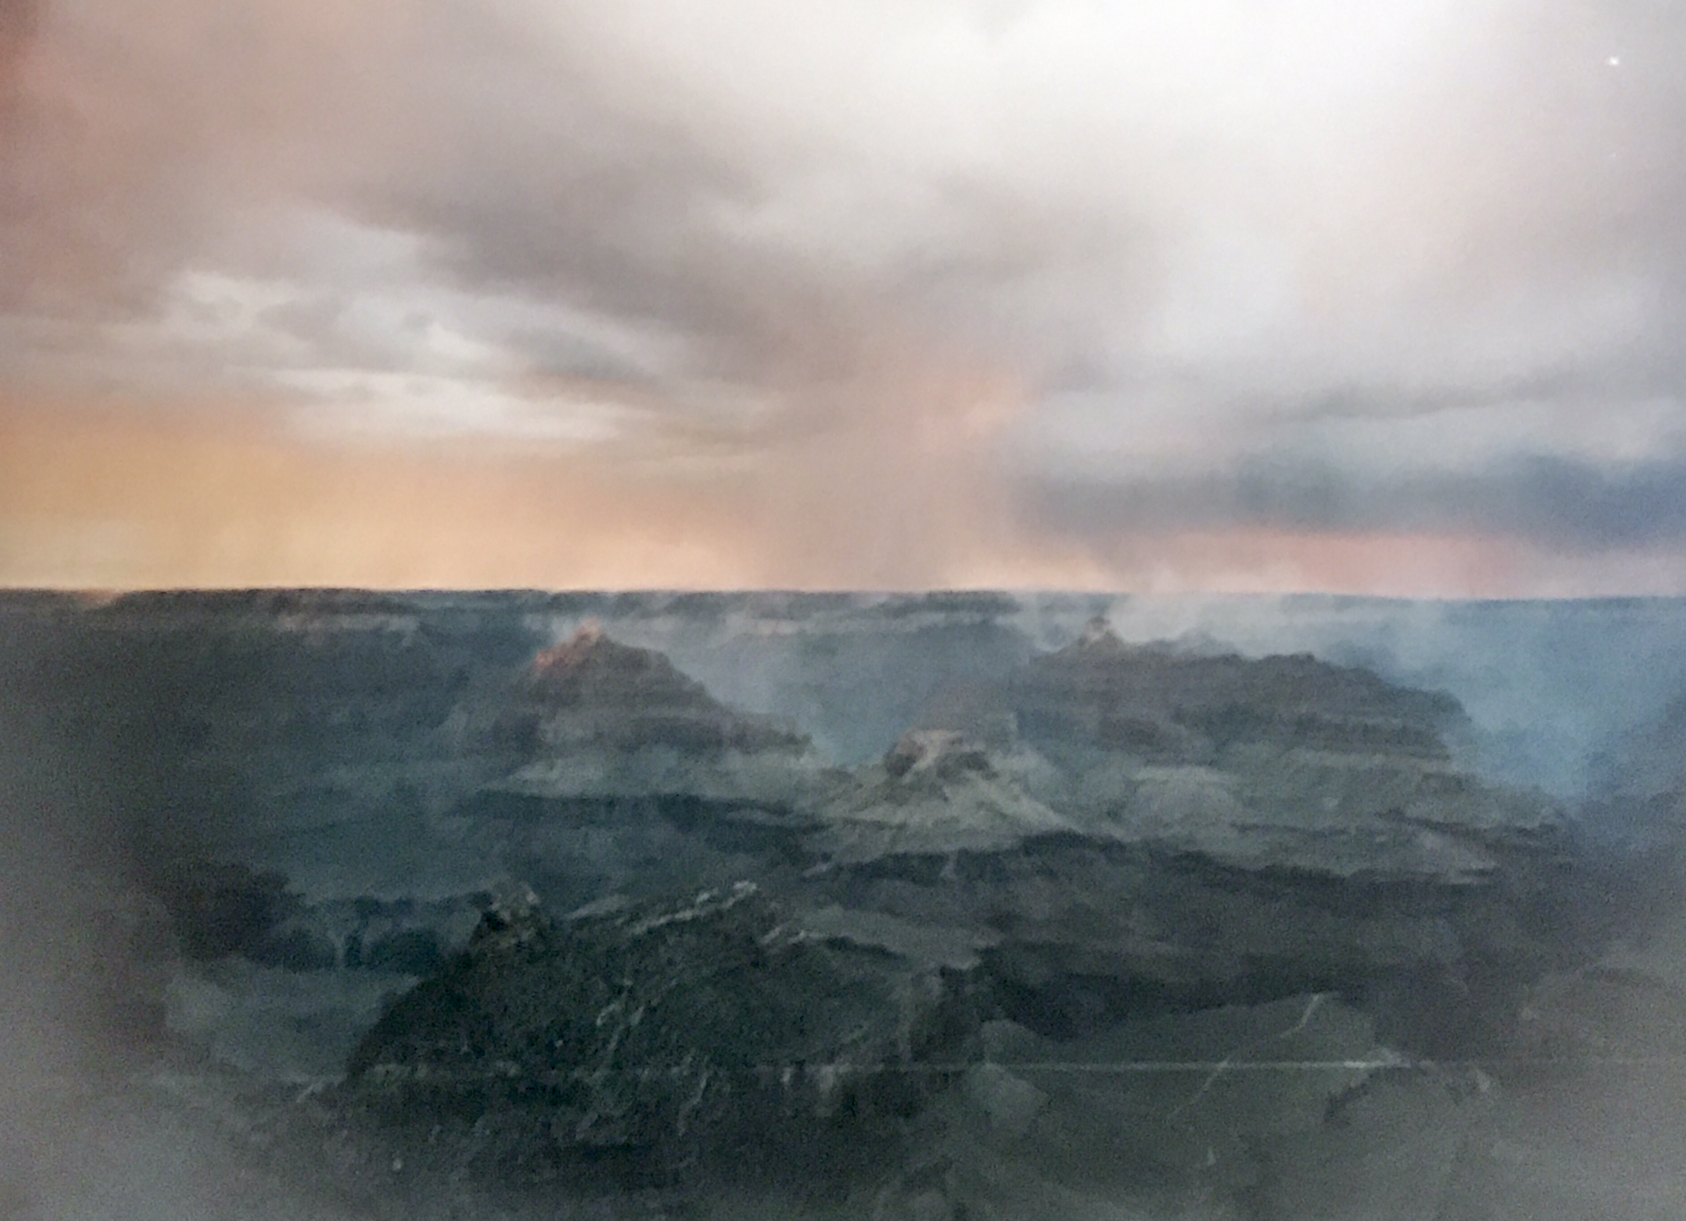 But how could you not fall in love with this landscape! A moody analog shot of the Grand Canyon from my dad's archives.